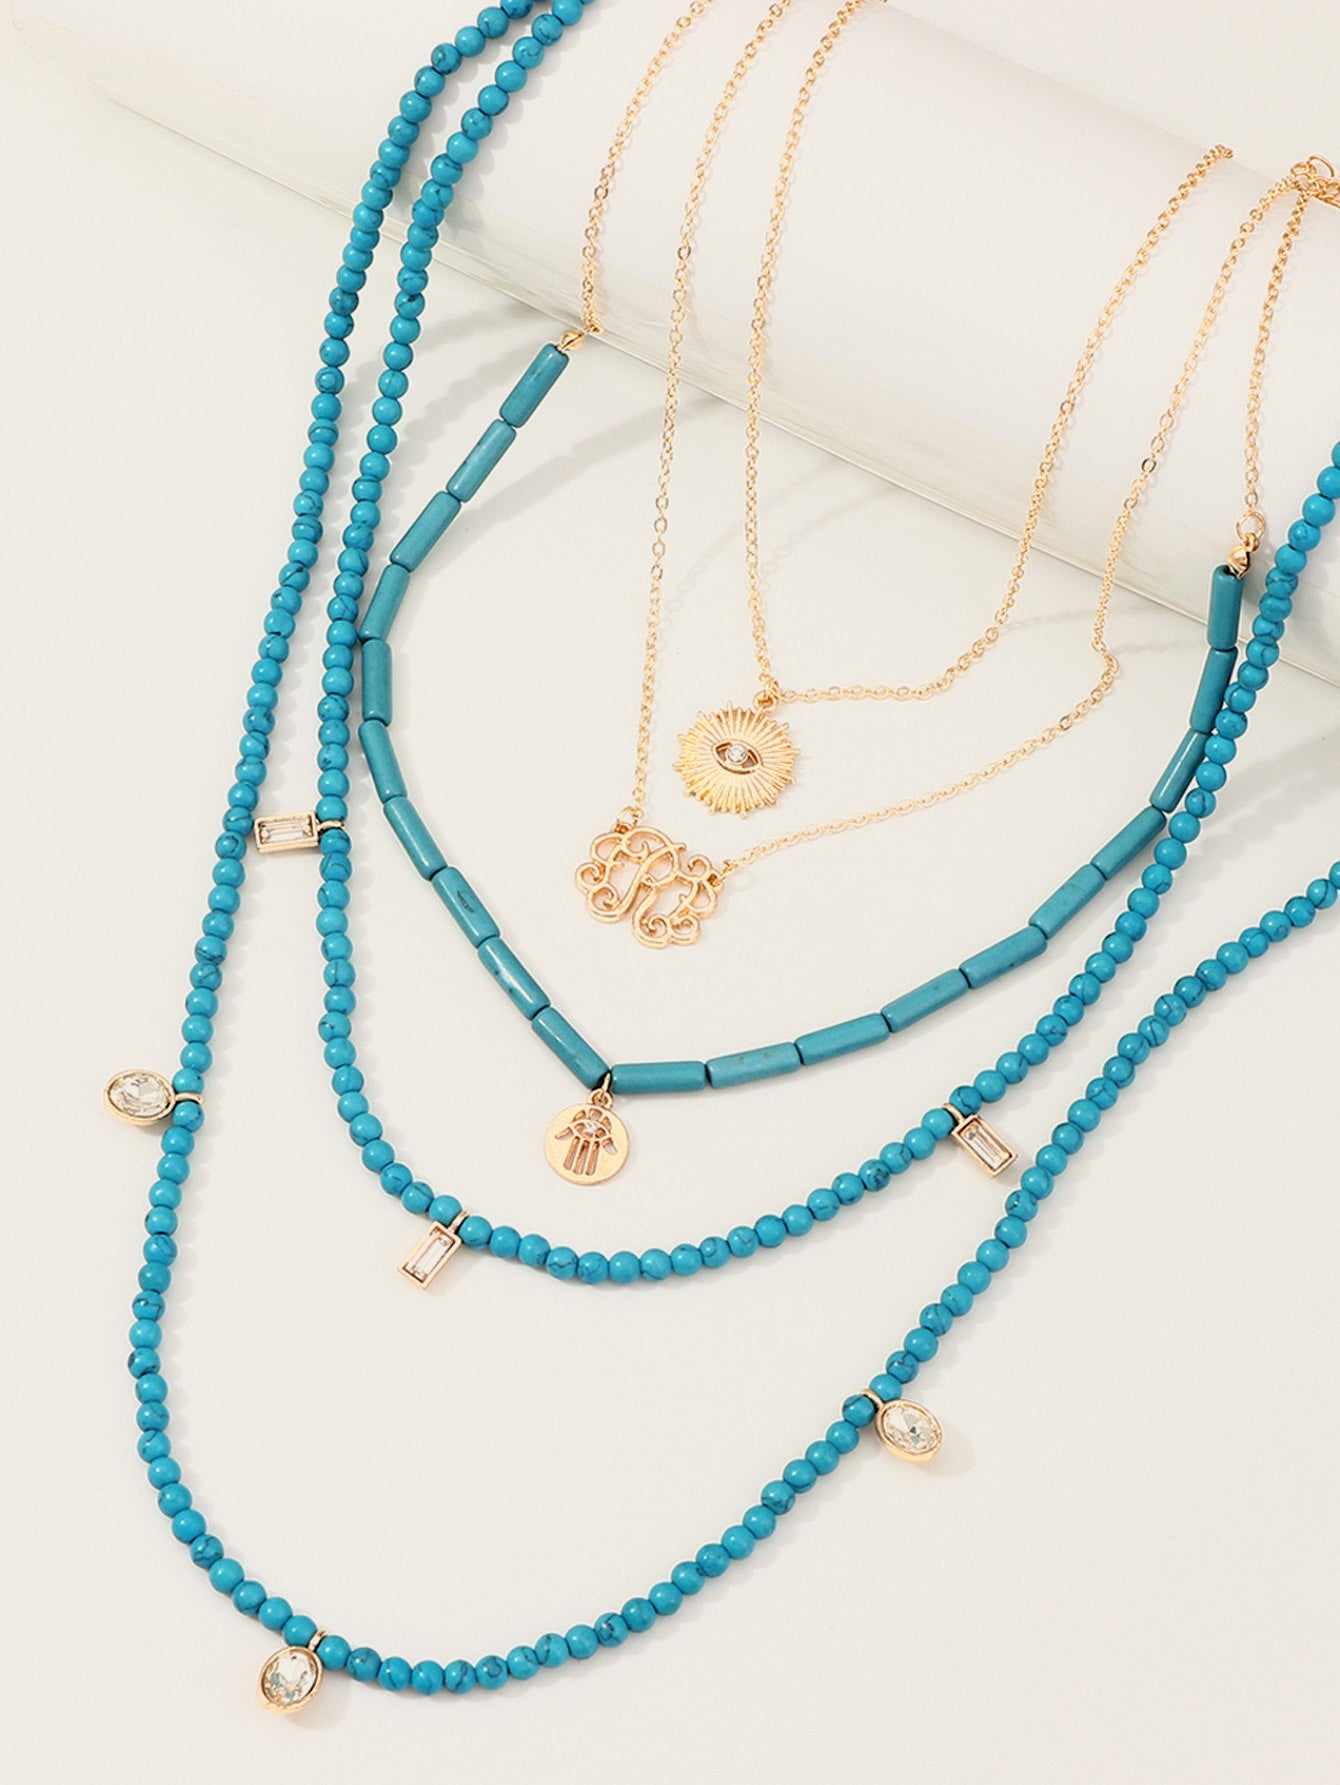 Multi Layered Golden Coin With Blue Beaded Pendant 5pcs Necklace